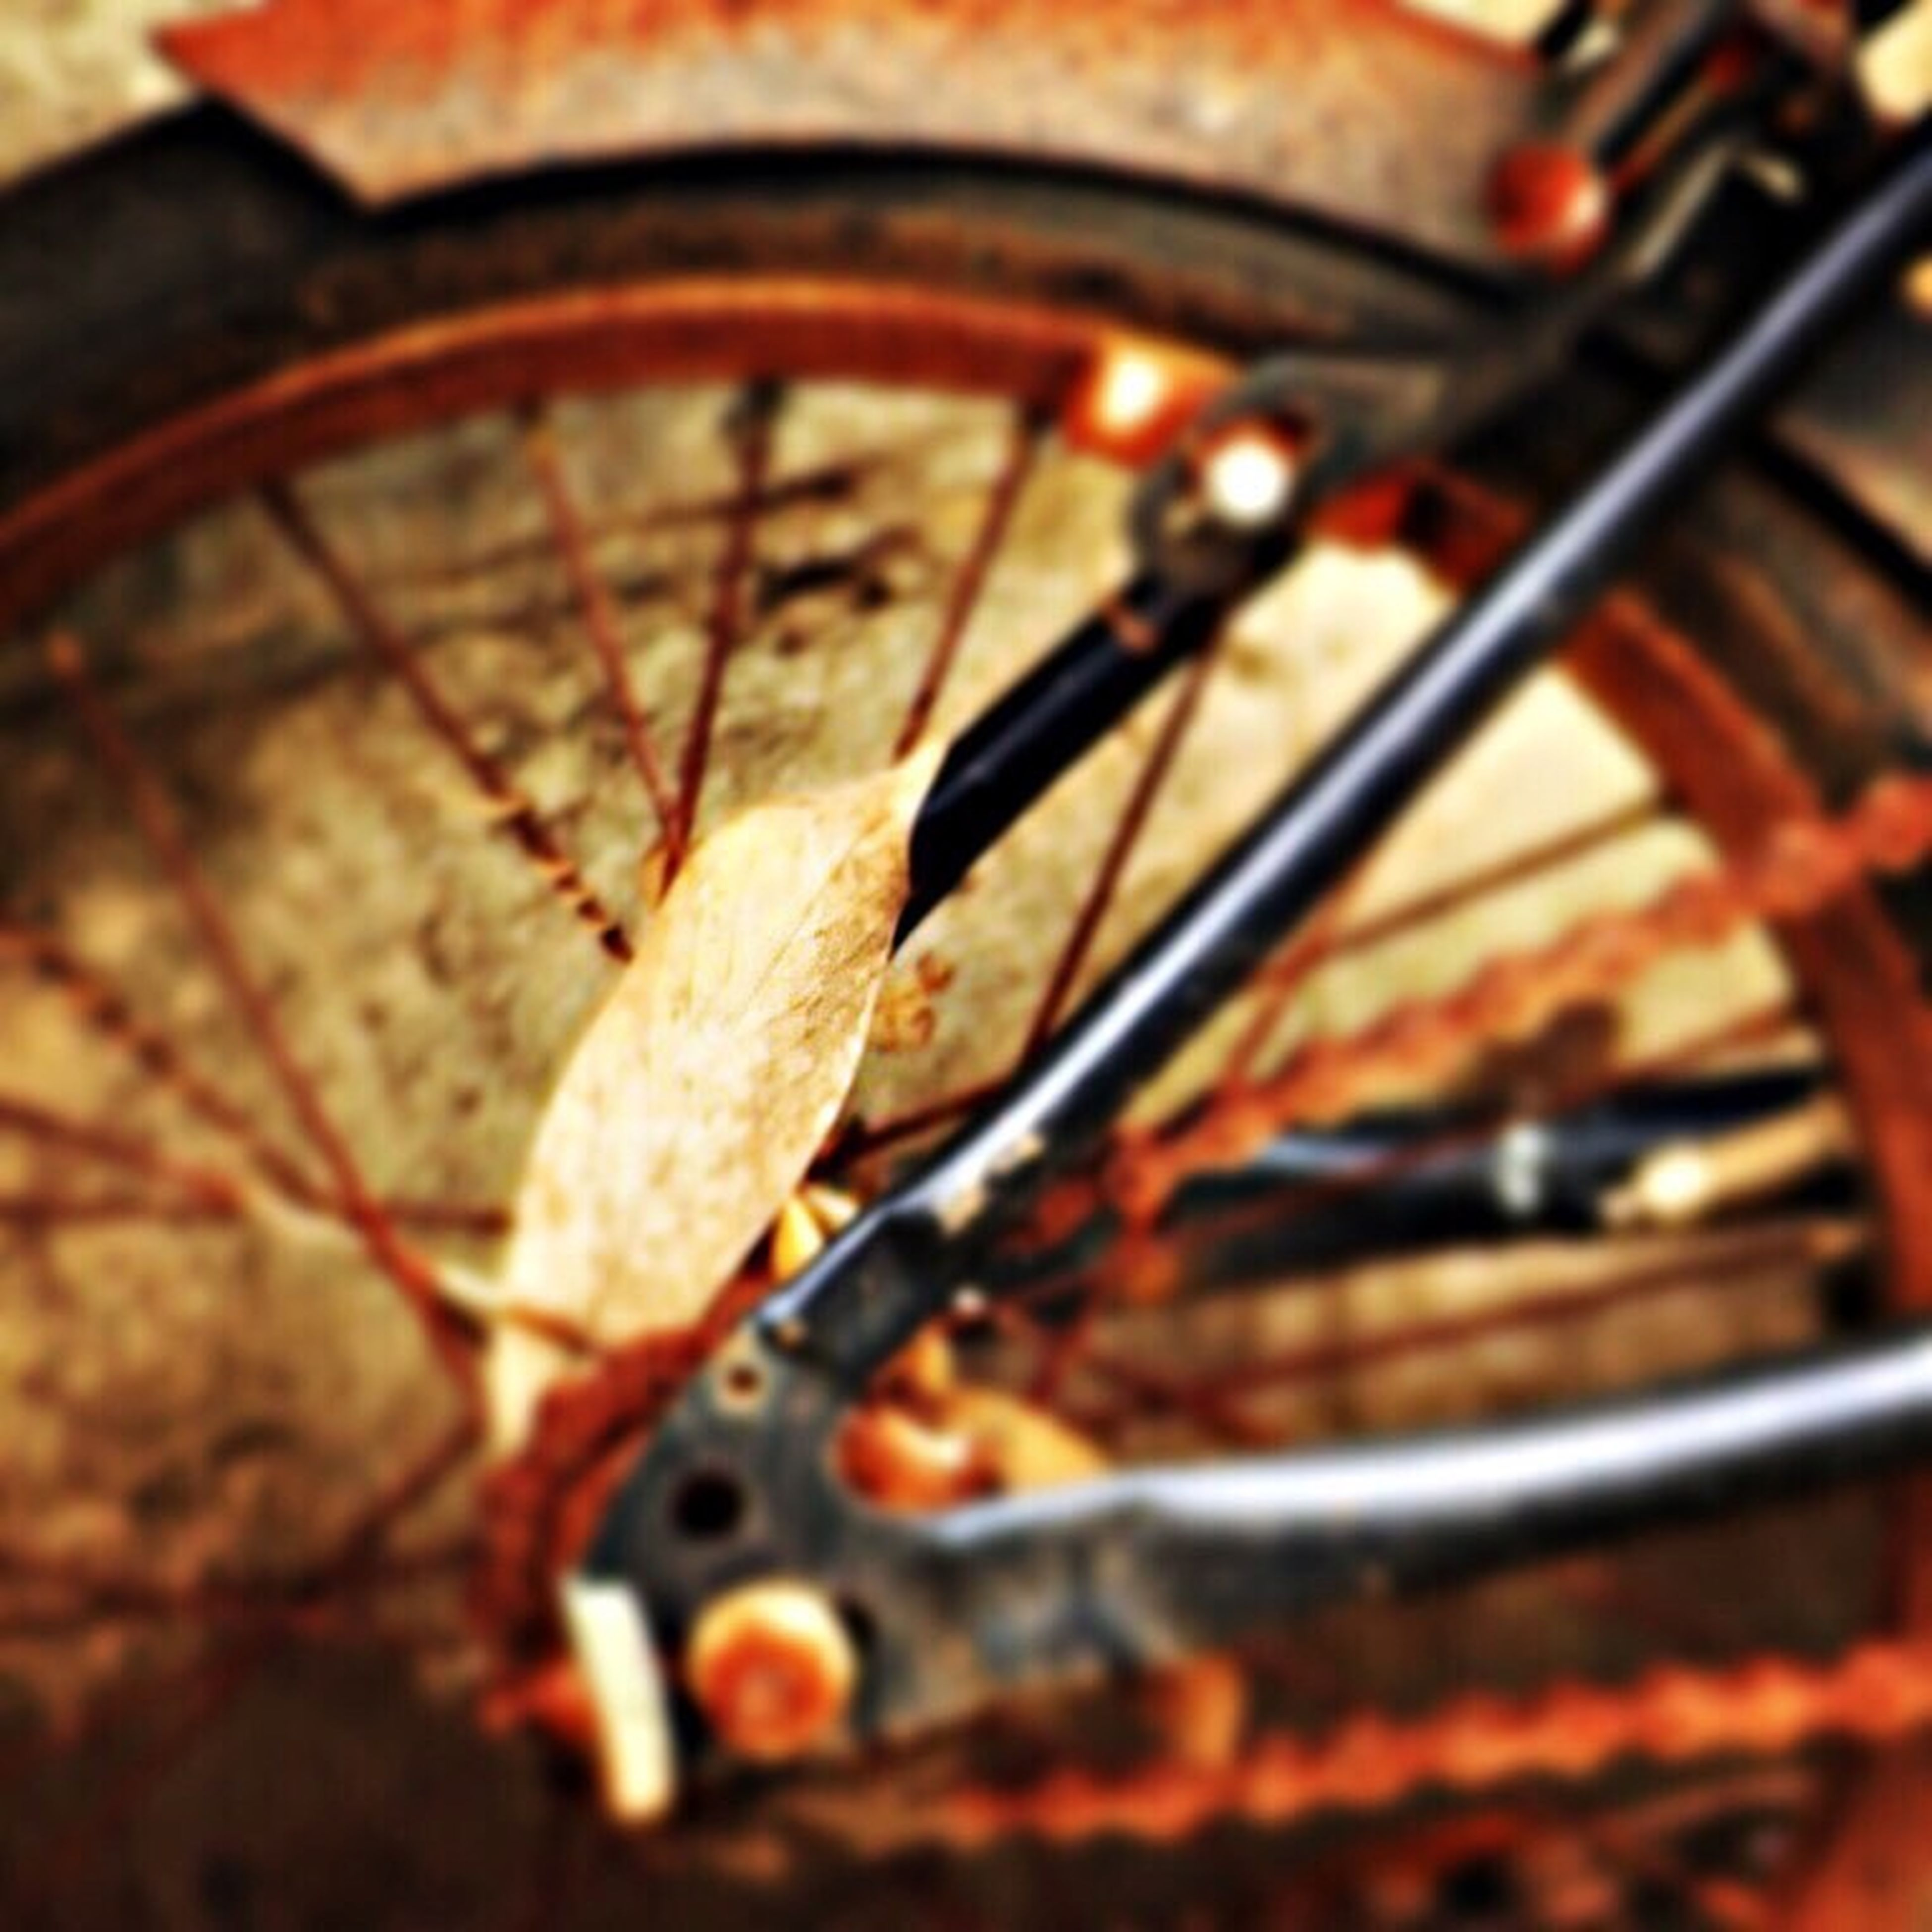 metal, close-up, rusty, indoors, selective focus, obsolete, metallic, old, focus on foreground, damaged, deterioration, abandoned, wheel, no people, still life, high angle view, part of, run-down, day, transportation